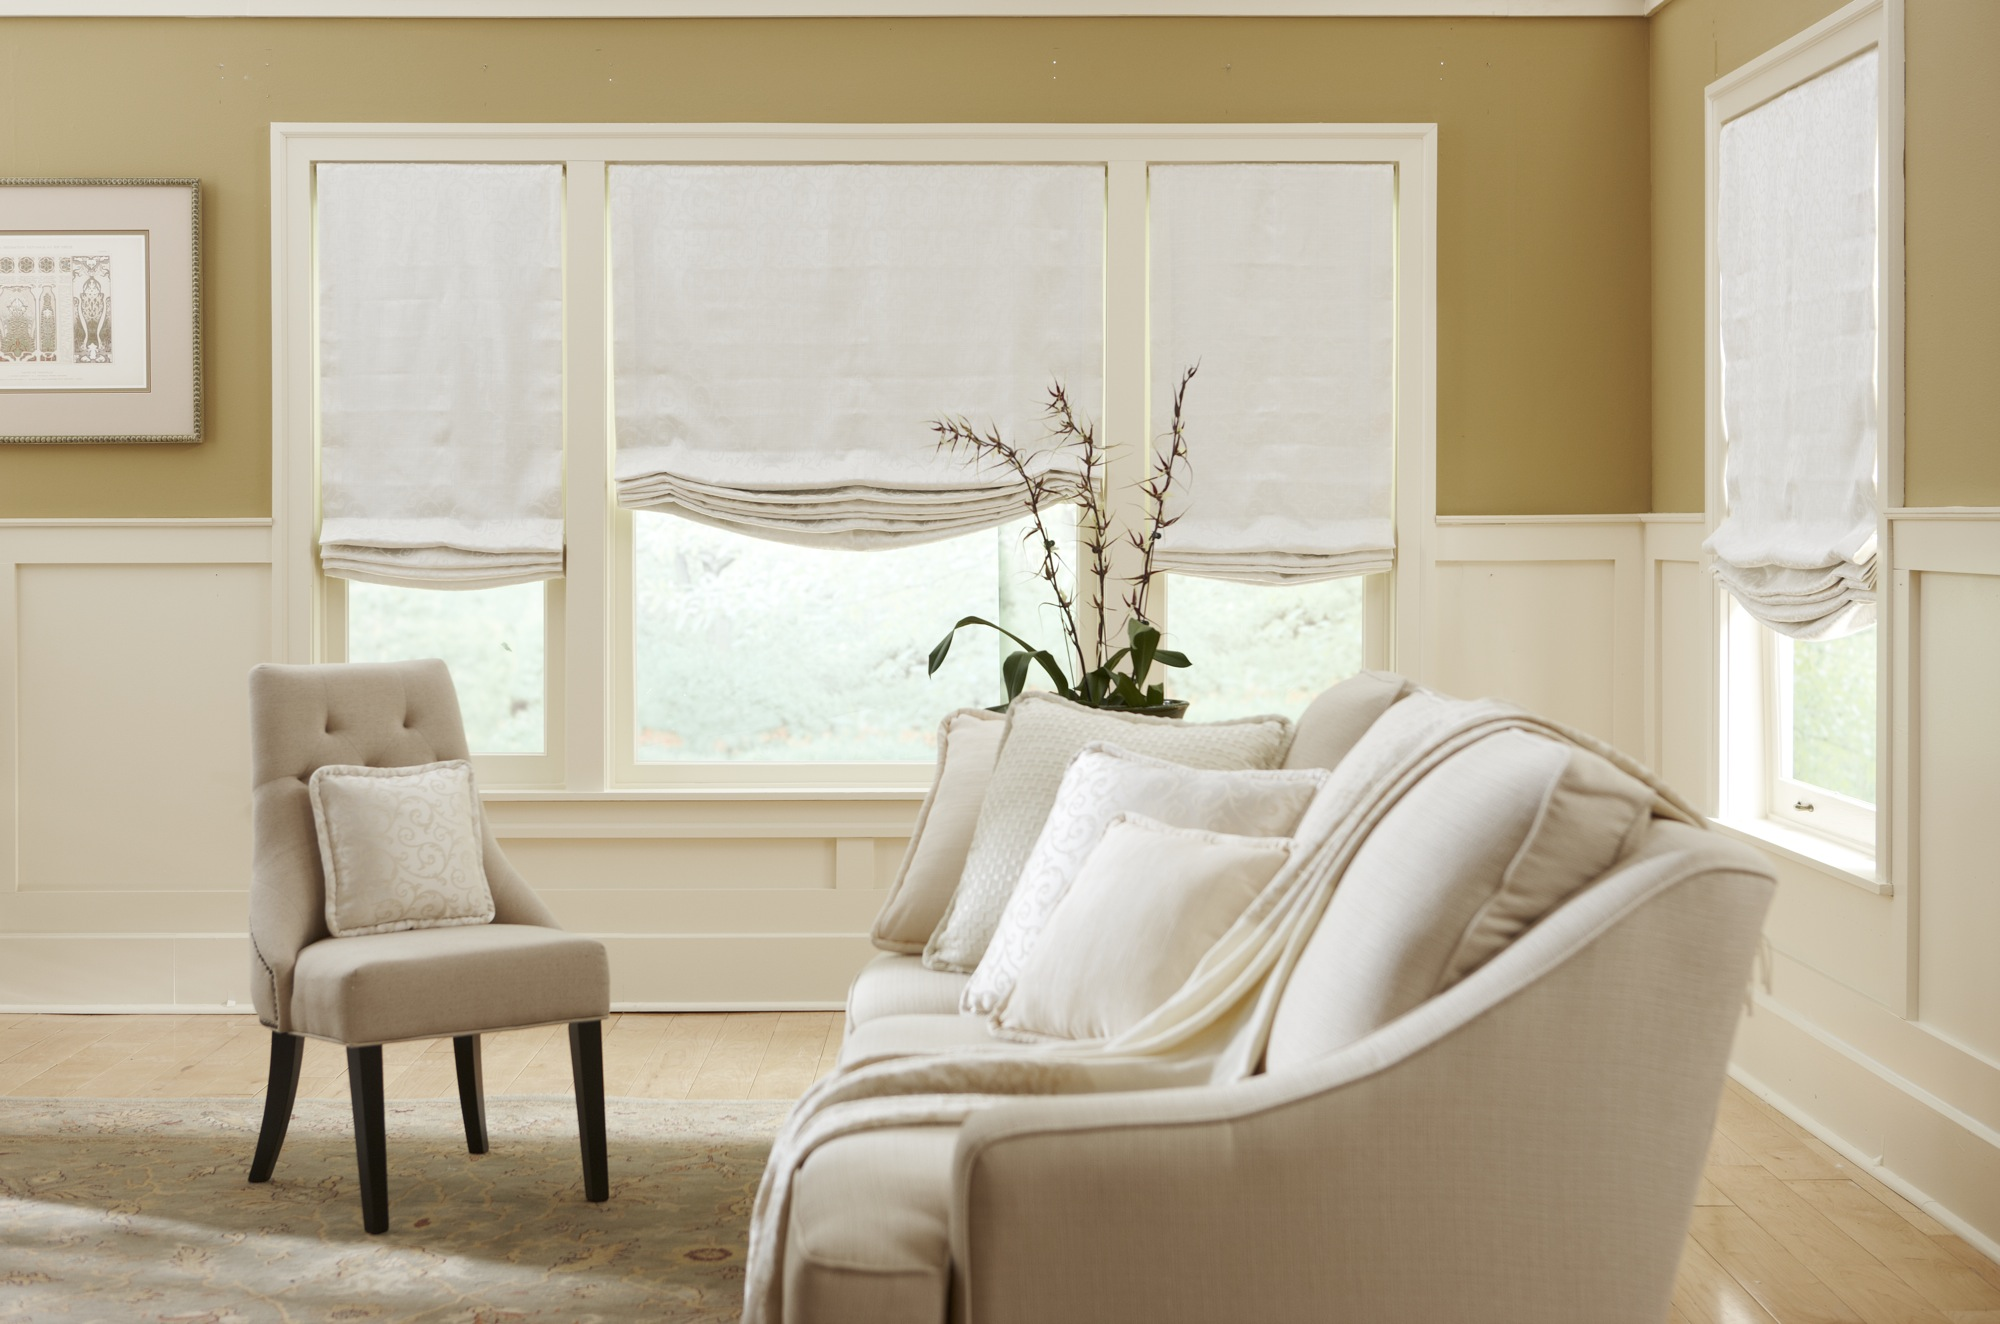 ribbed blinds archives blindss wear etc fashions ideas horizon horizons shades fabric castlewellan window sunroom roman bury b